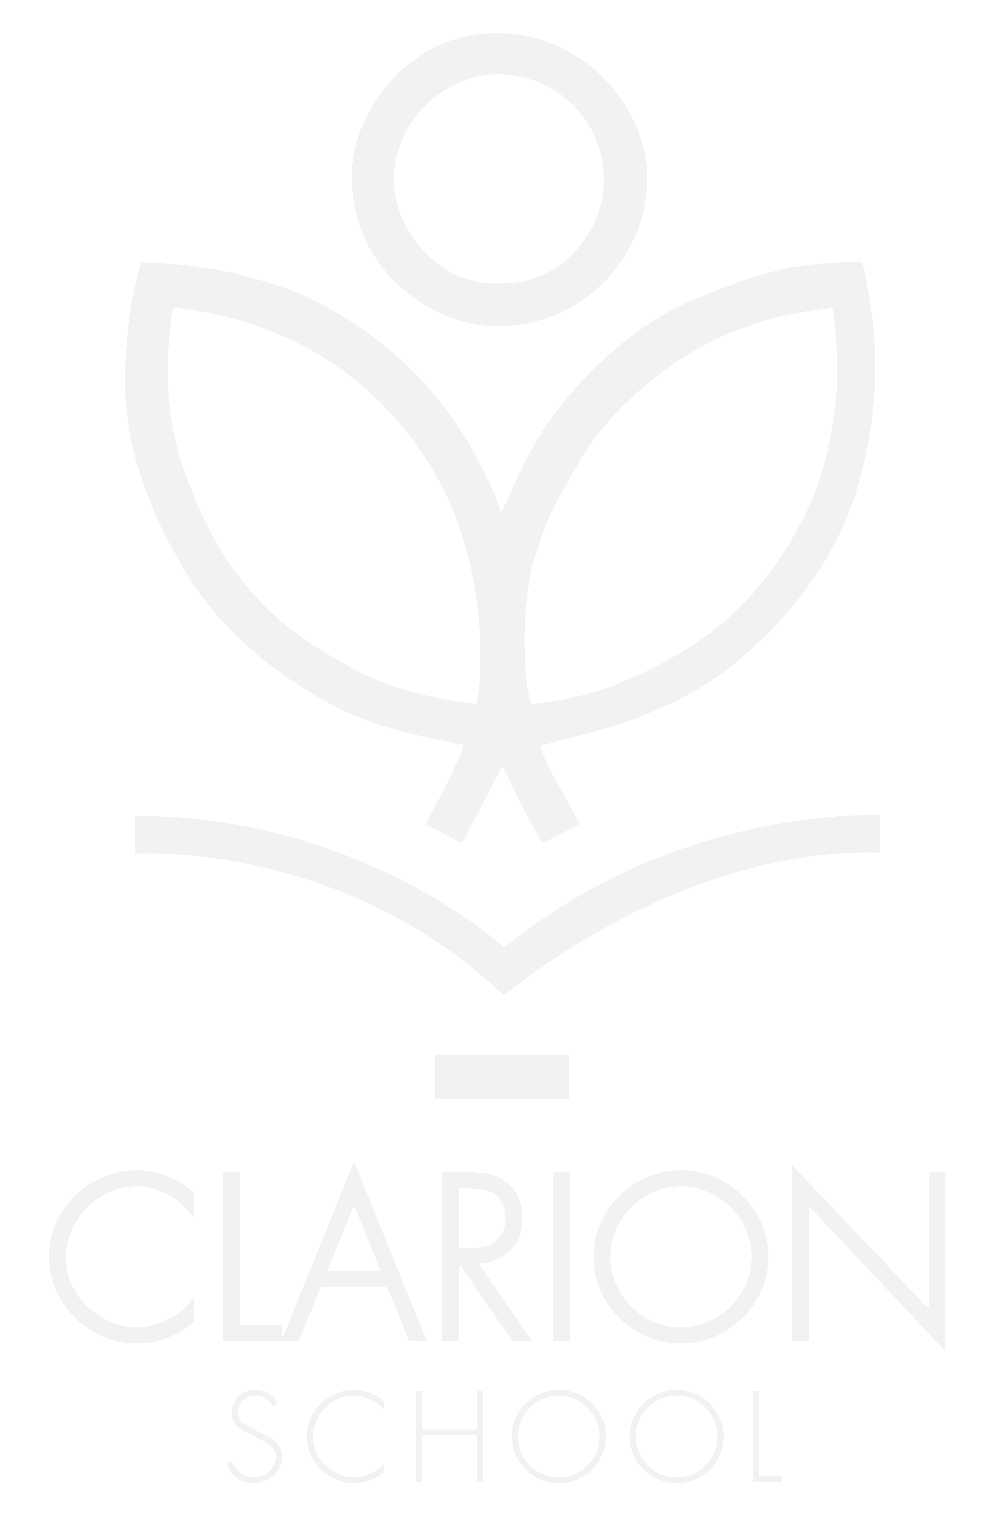 Clarion_School-closed-text.png